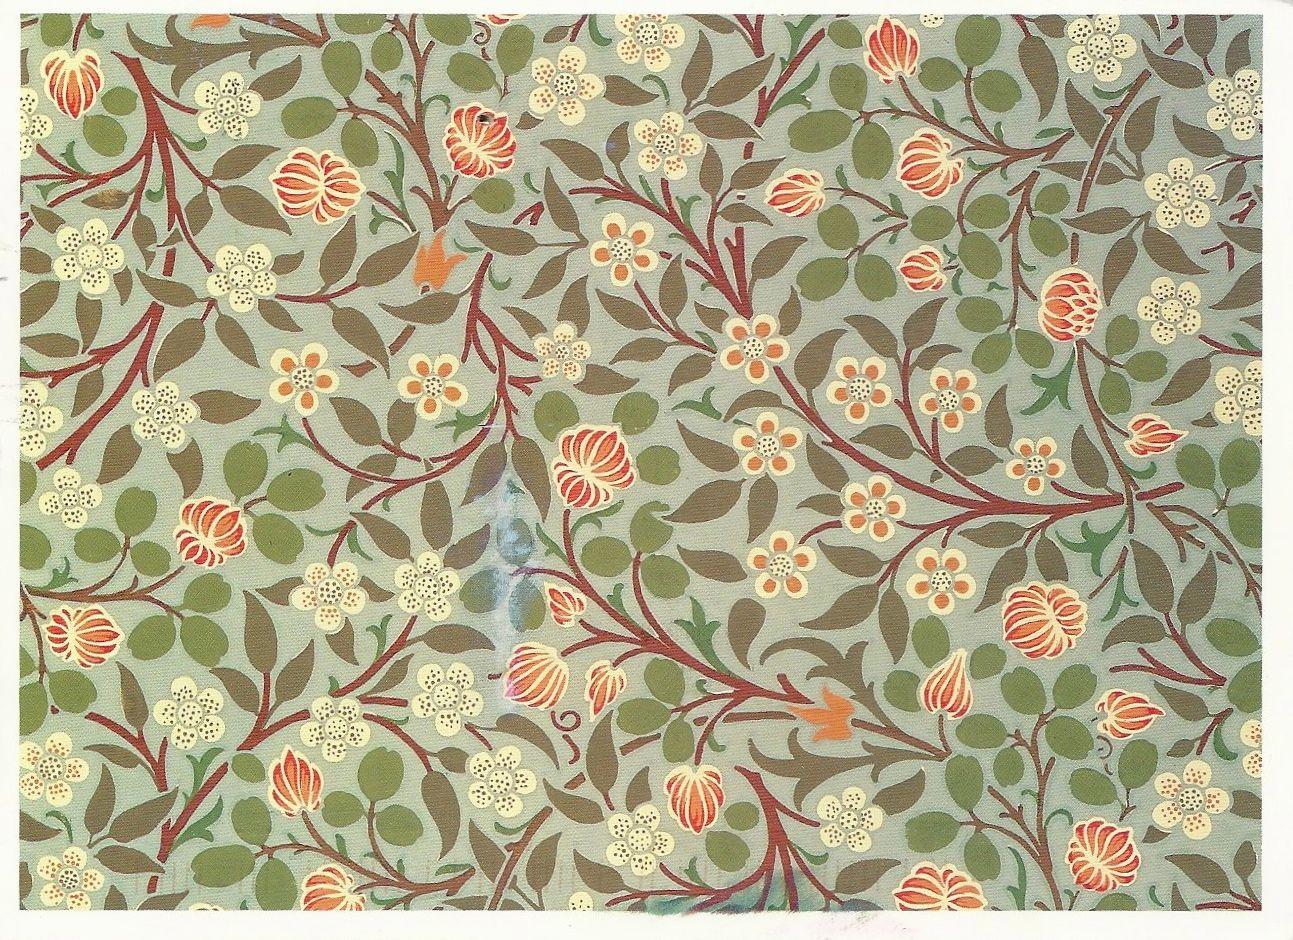 Arts And Crafts Movement- Floral Pattern